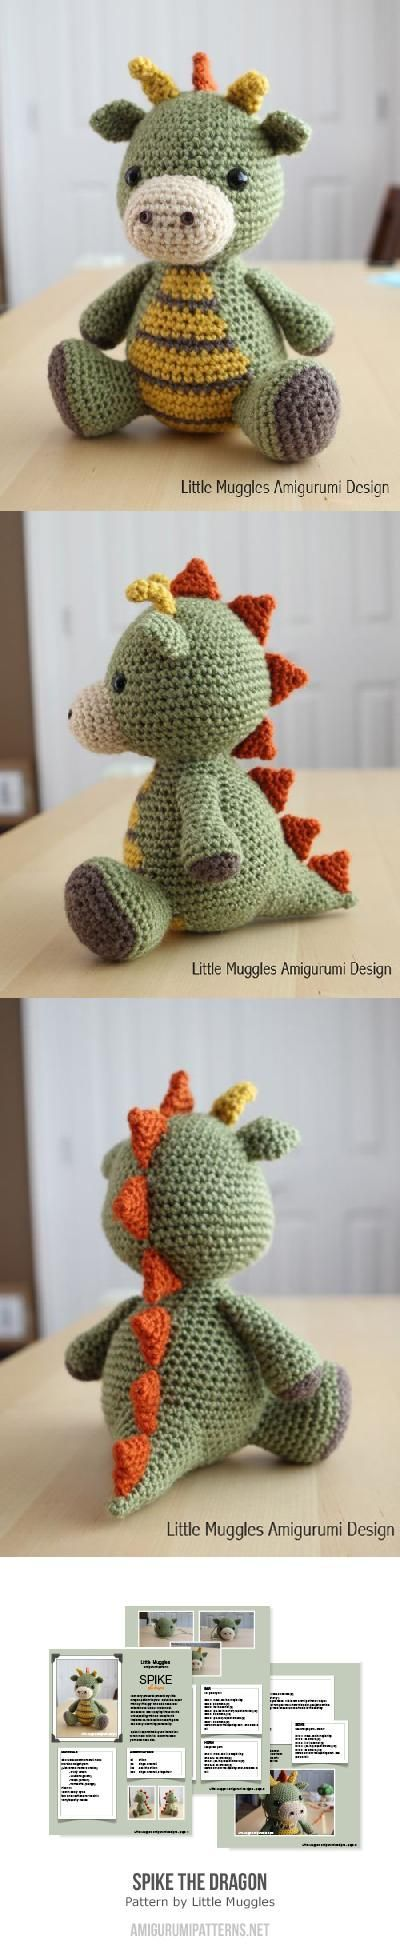 Spike the Dragon amigurumi pattern by Little Muggles | Dragones ...